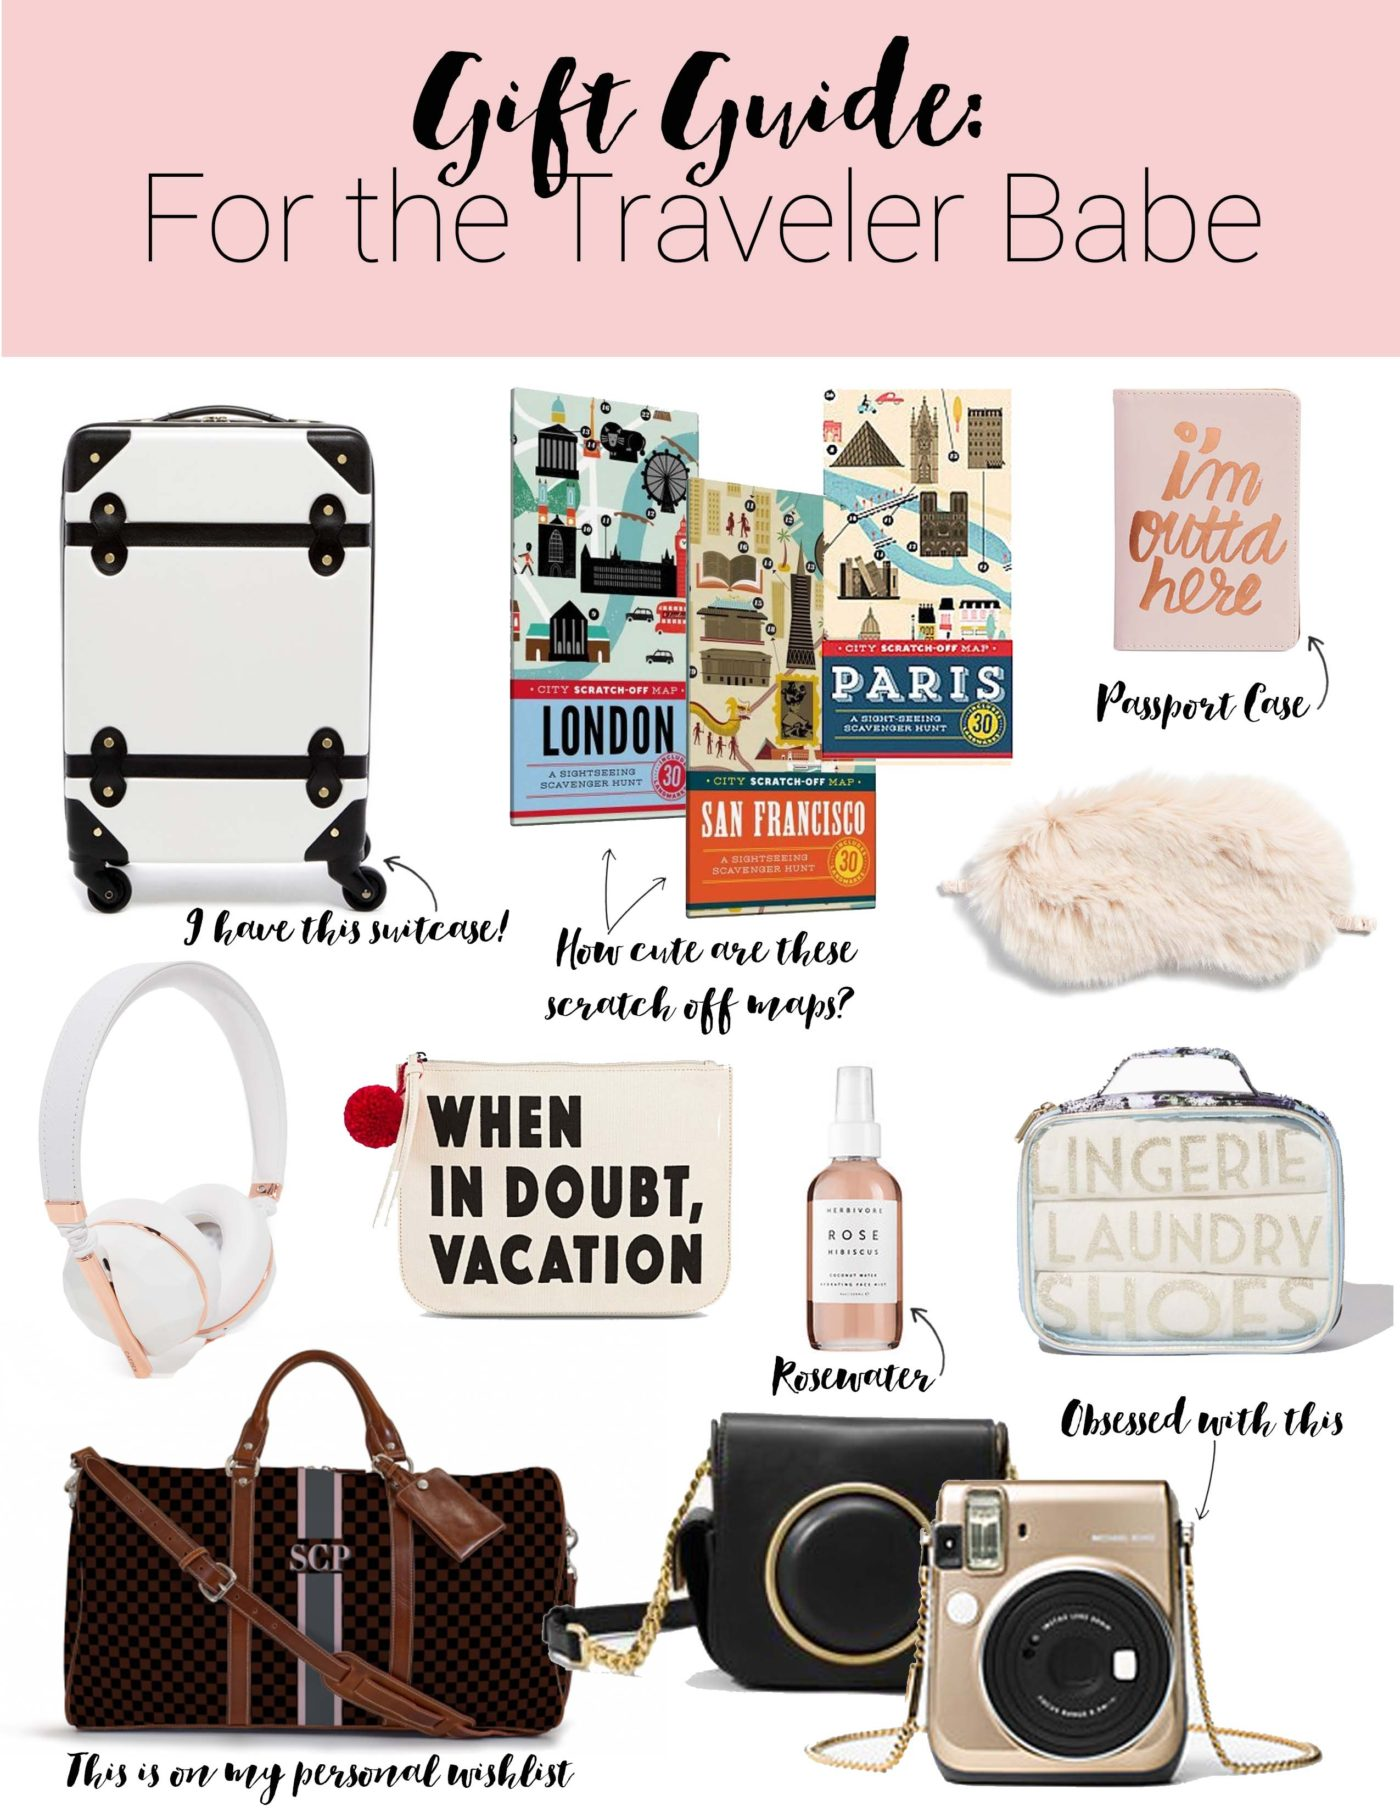 gift-guide-for-the-traveler-babe